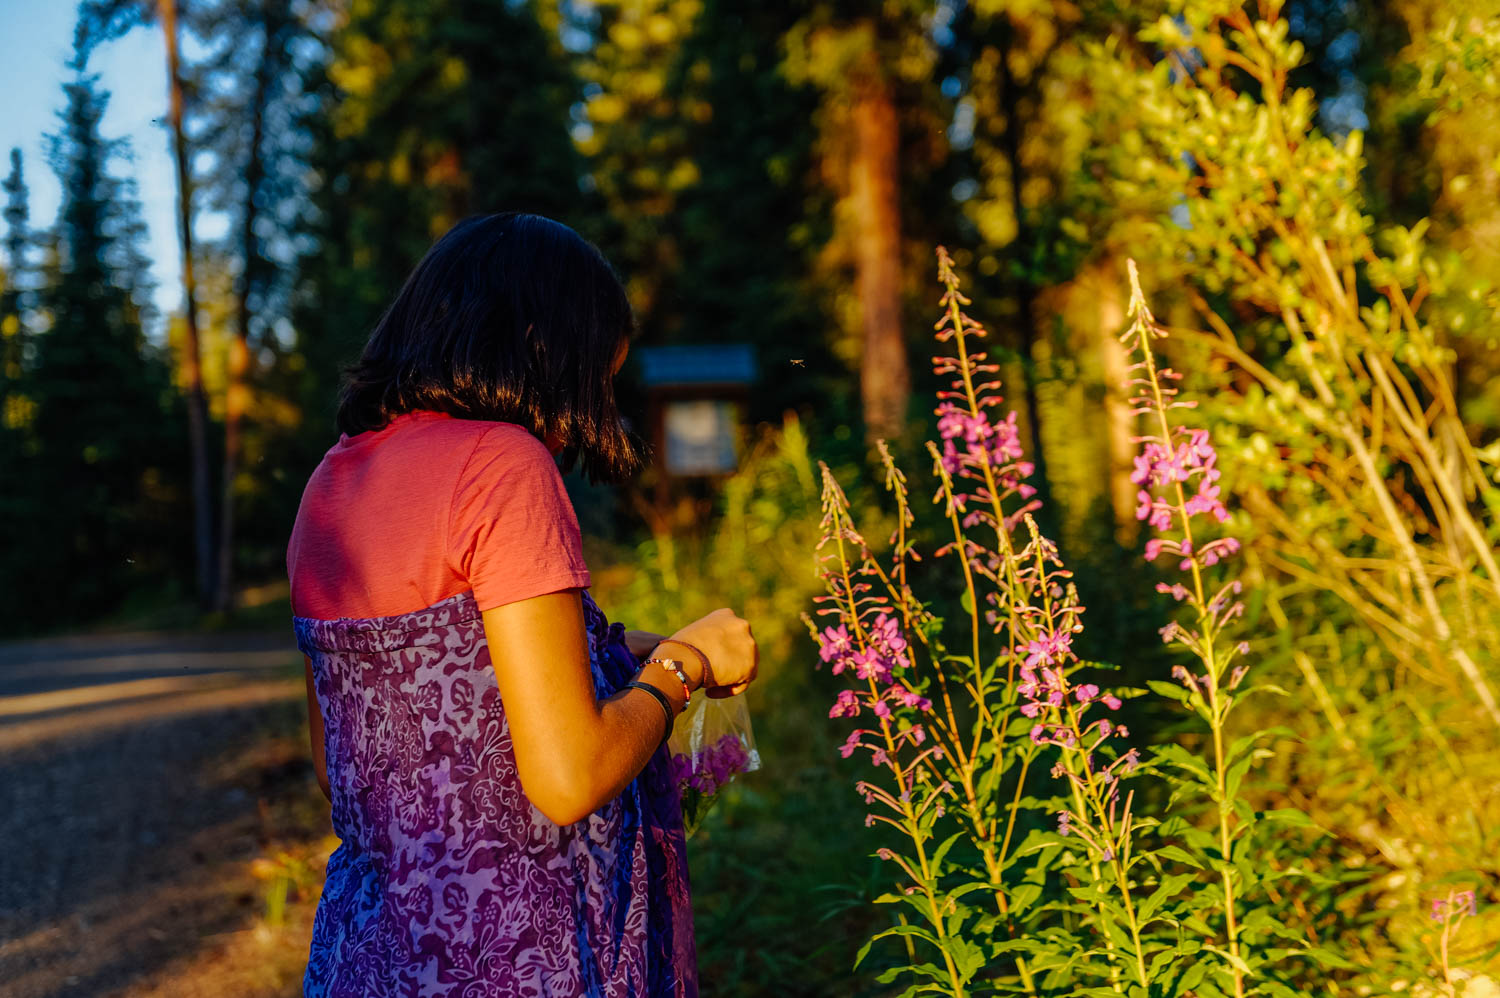 Picking fireweed to make a tea mix.